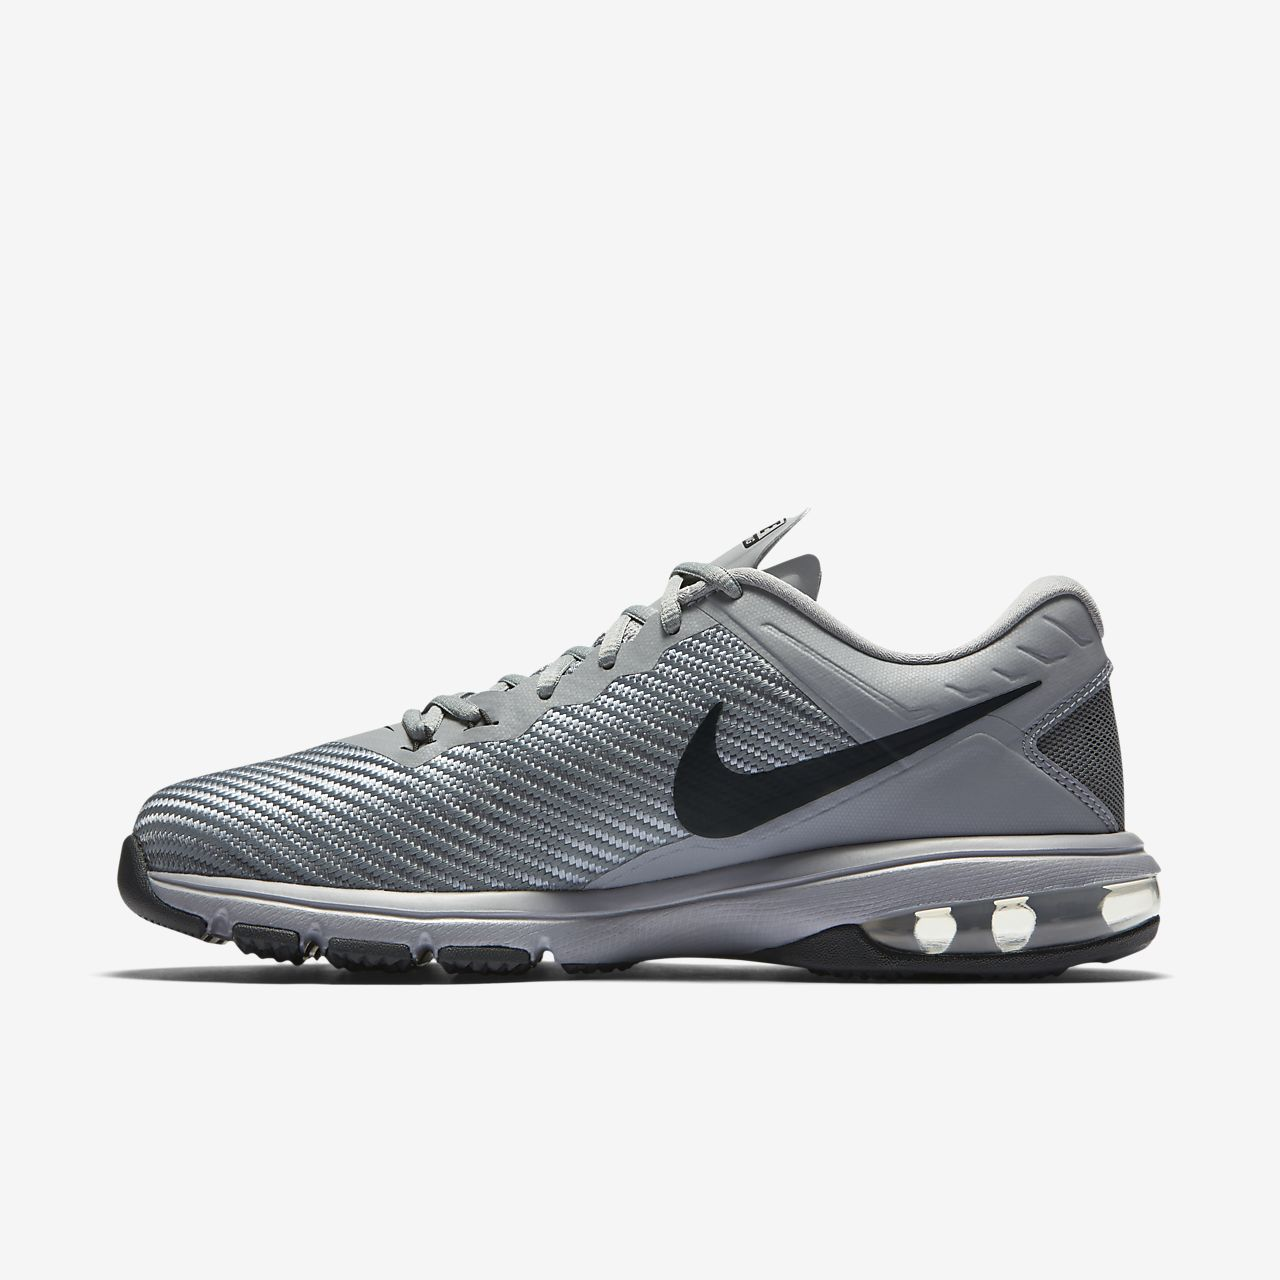 promo code 5ee33 f700d ... discount code for nike air max full ride tr 1.5 black e8dc5 d61bd